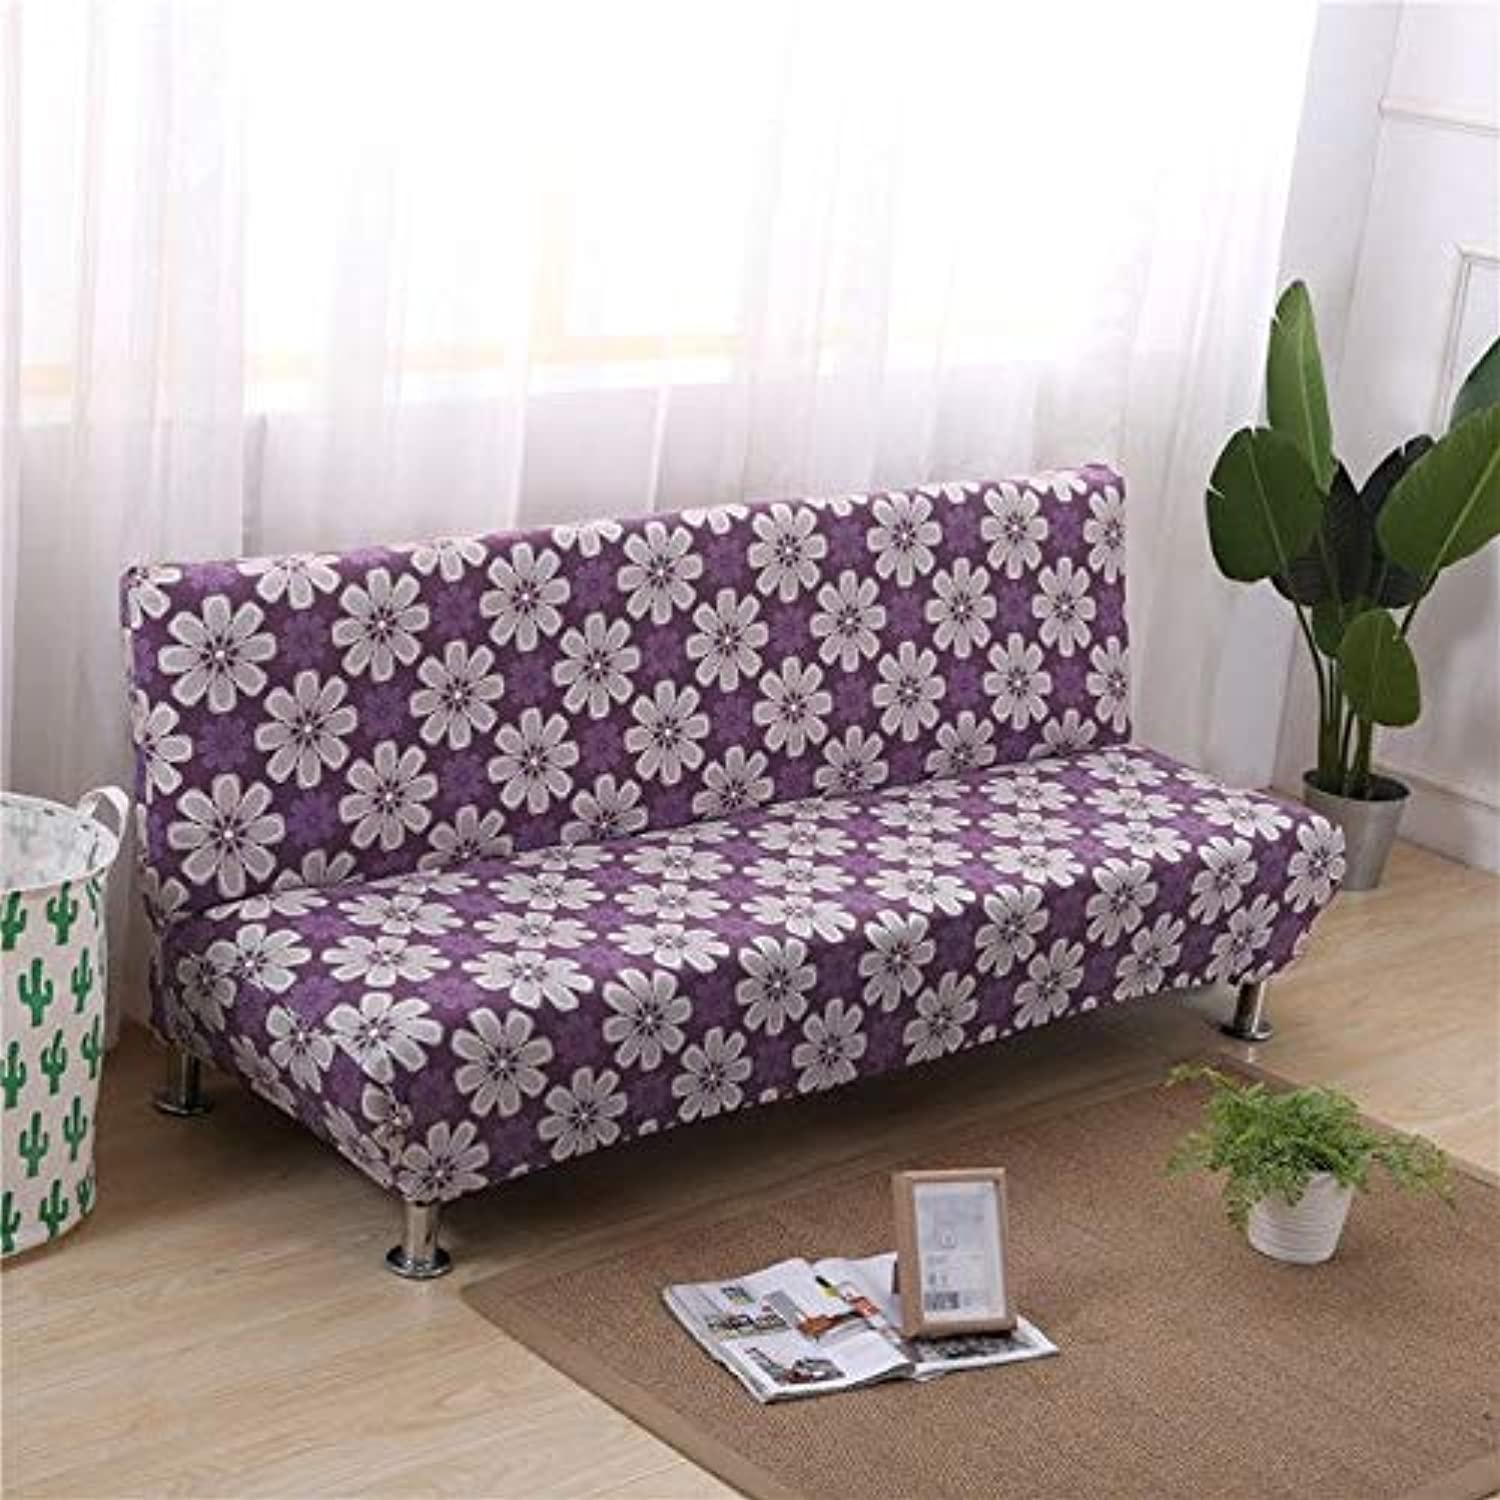 Elastic Sofa Bed Covers for Living Room Sofa Towel Slip-Resistant Sofa Bed Cover Cotton Strech Slipcover   colour20, 160cm to 200cm